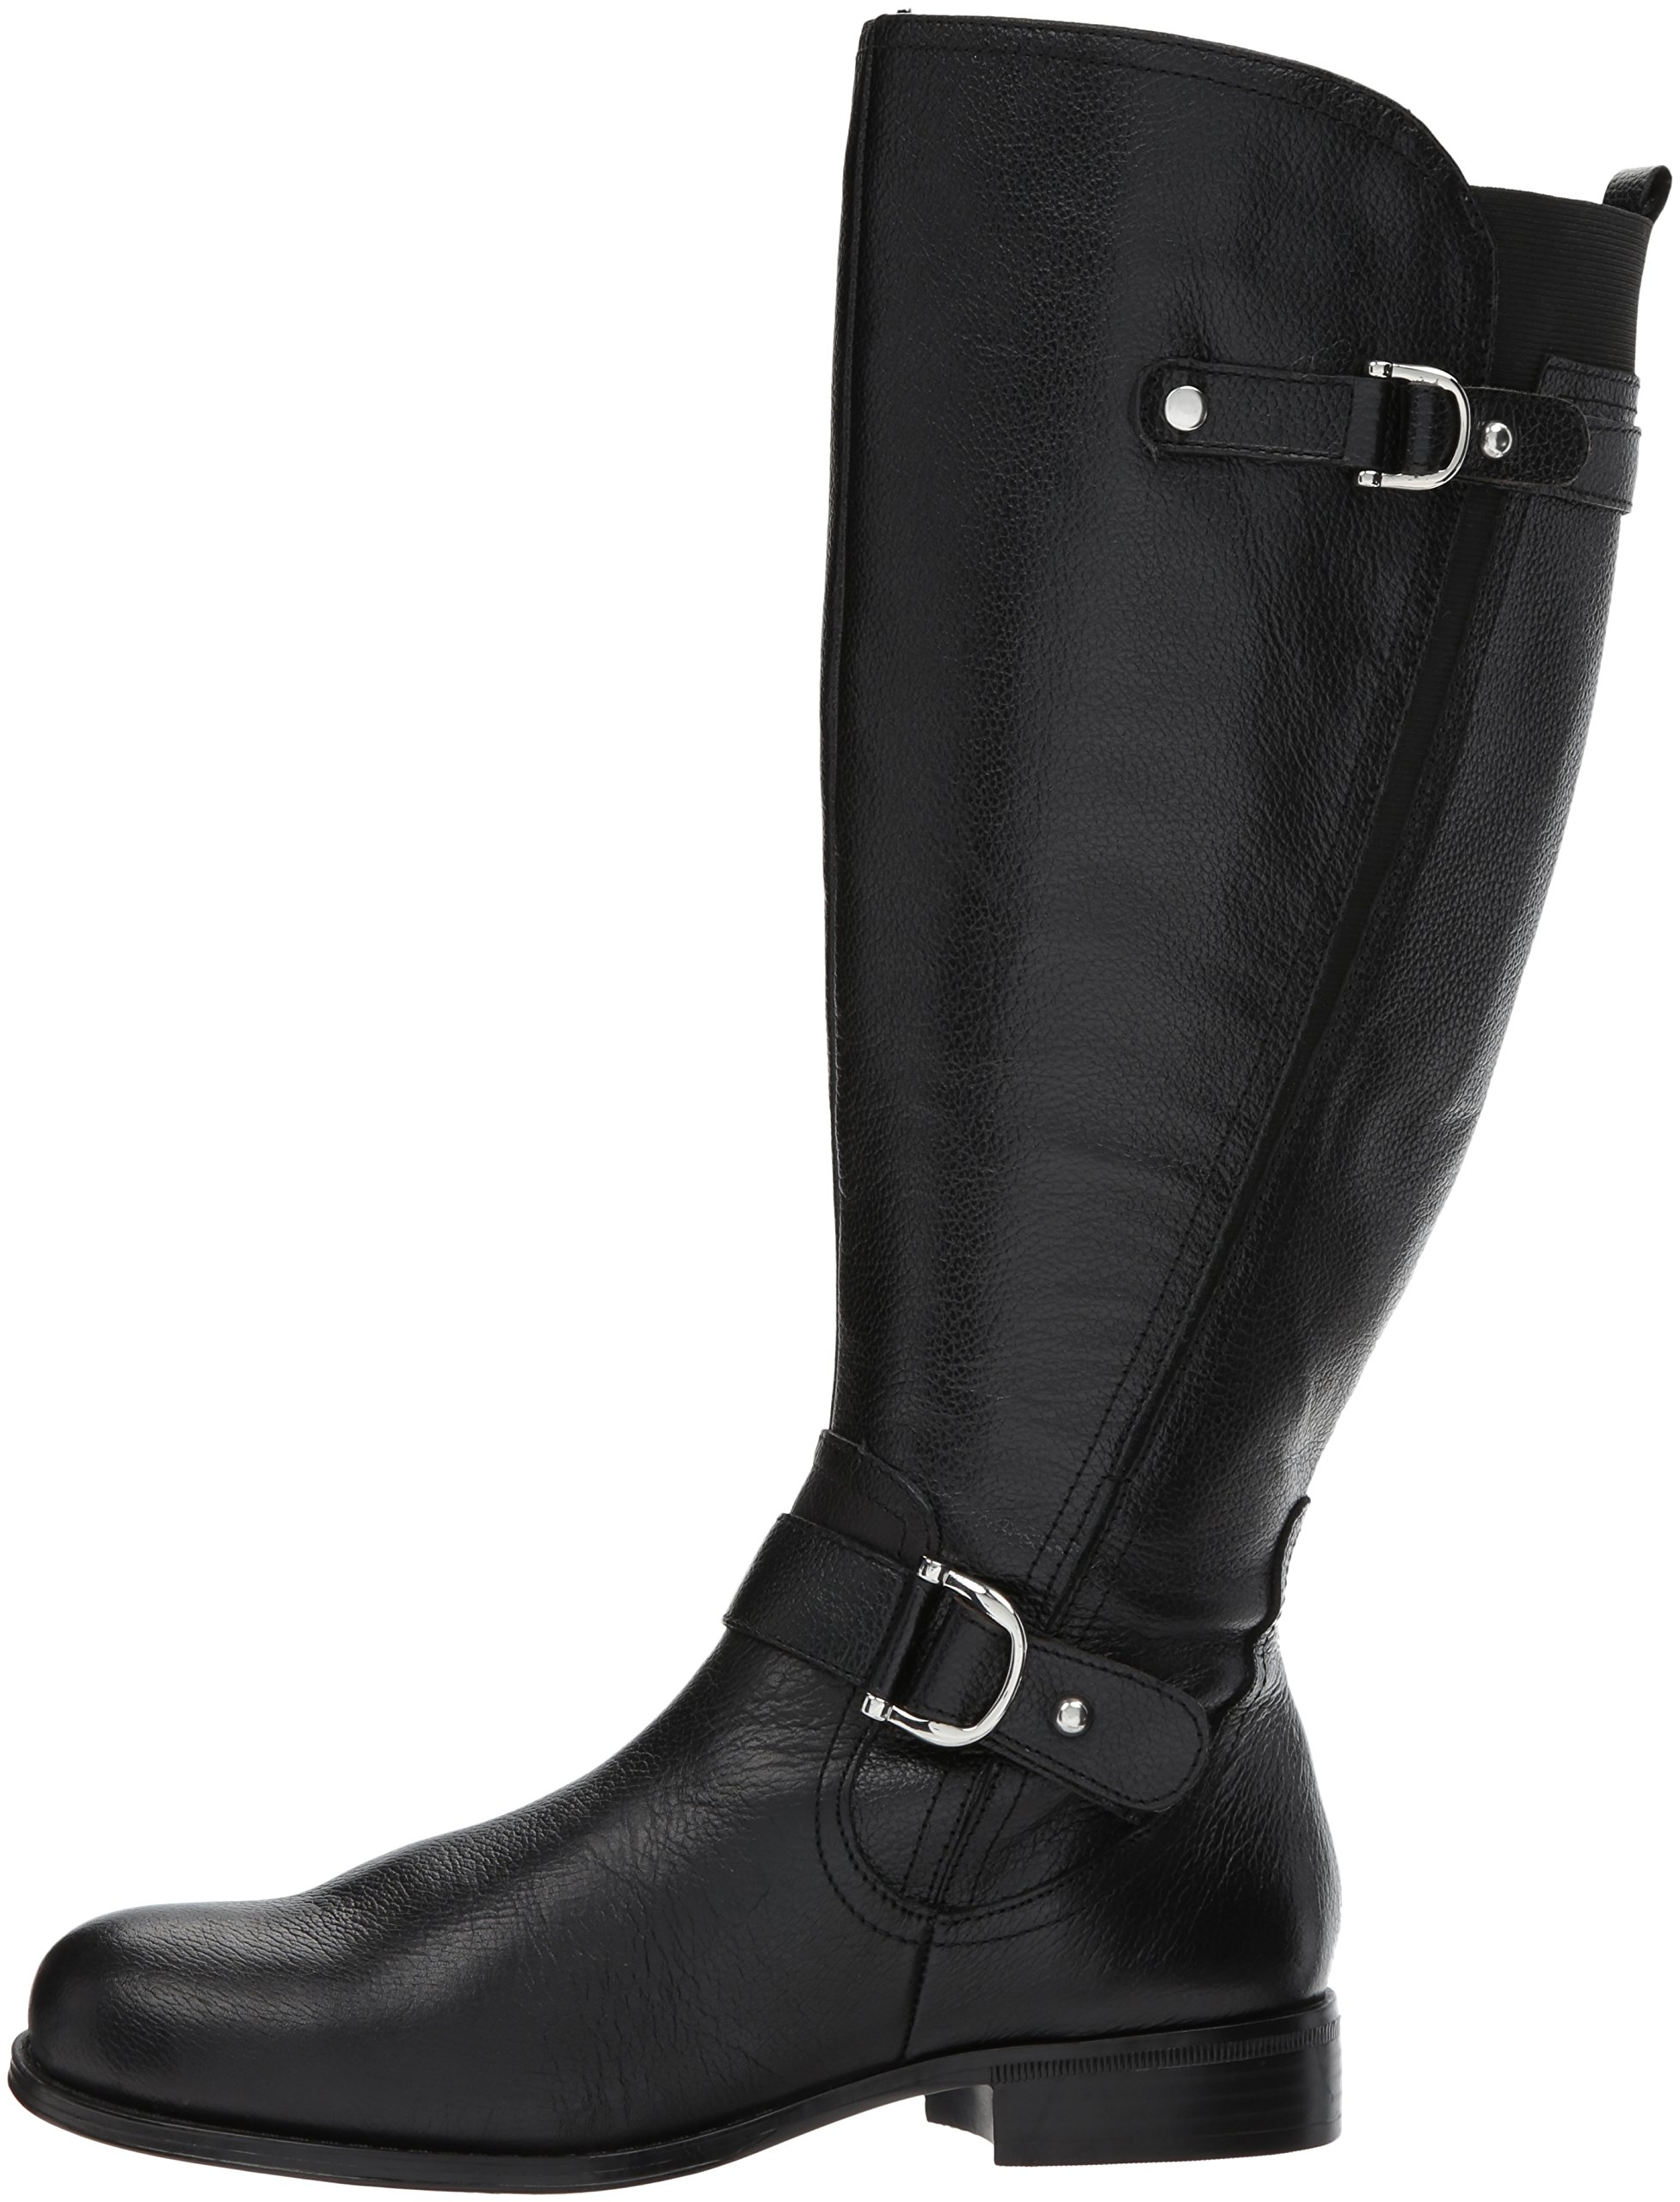 Naturalizer Women's Jenelle Wc Riding Boot, Black, 7.5 M US by Naturalizer (Image #5)